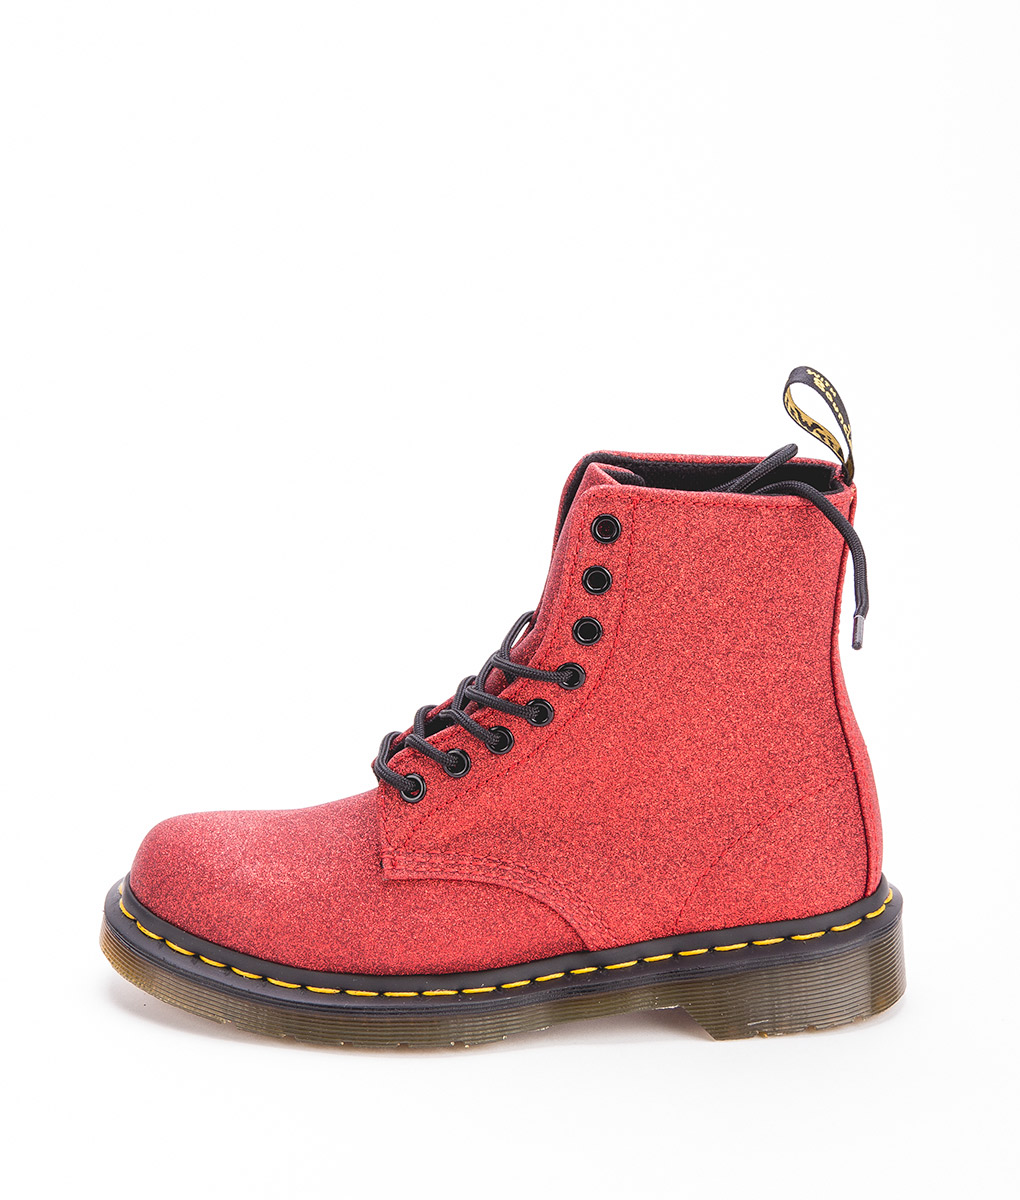 DR MARTENS Women Ankle Boots 1460 PASCAL GLITTER 24839602, Red